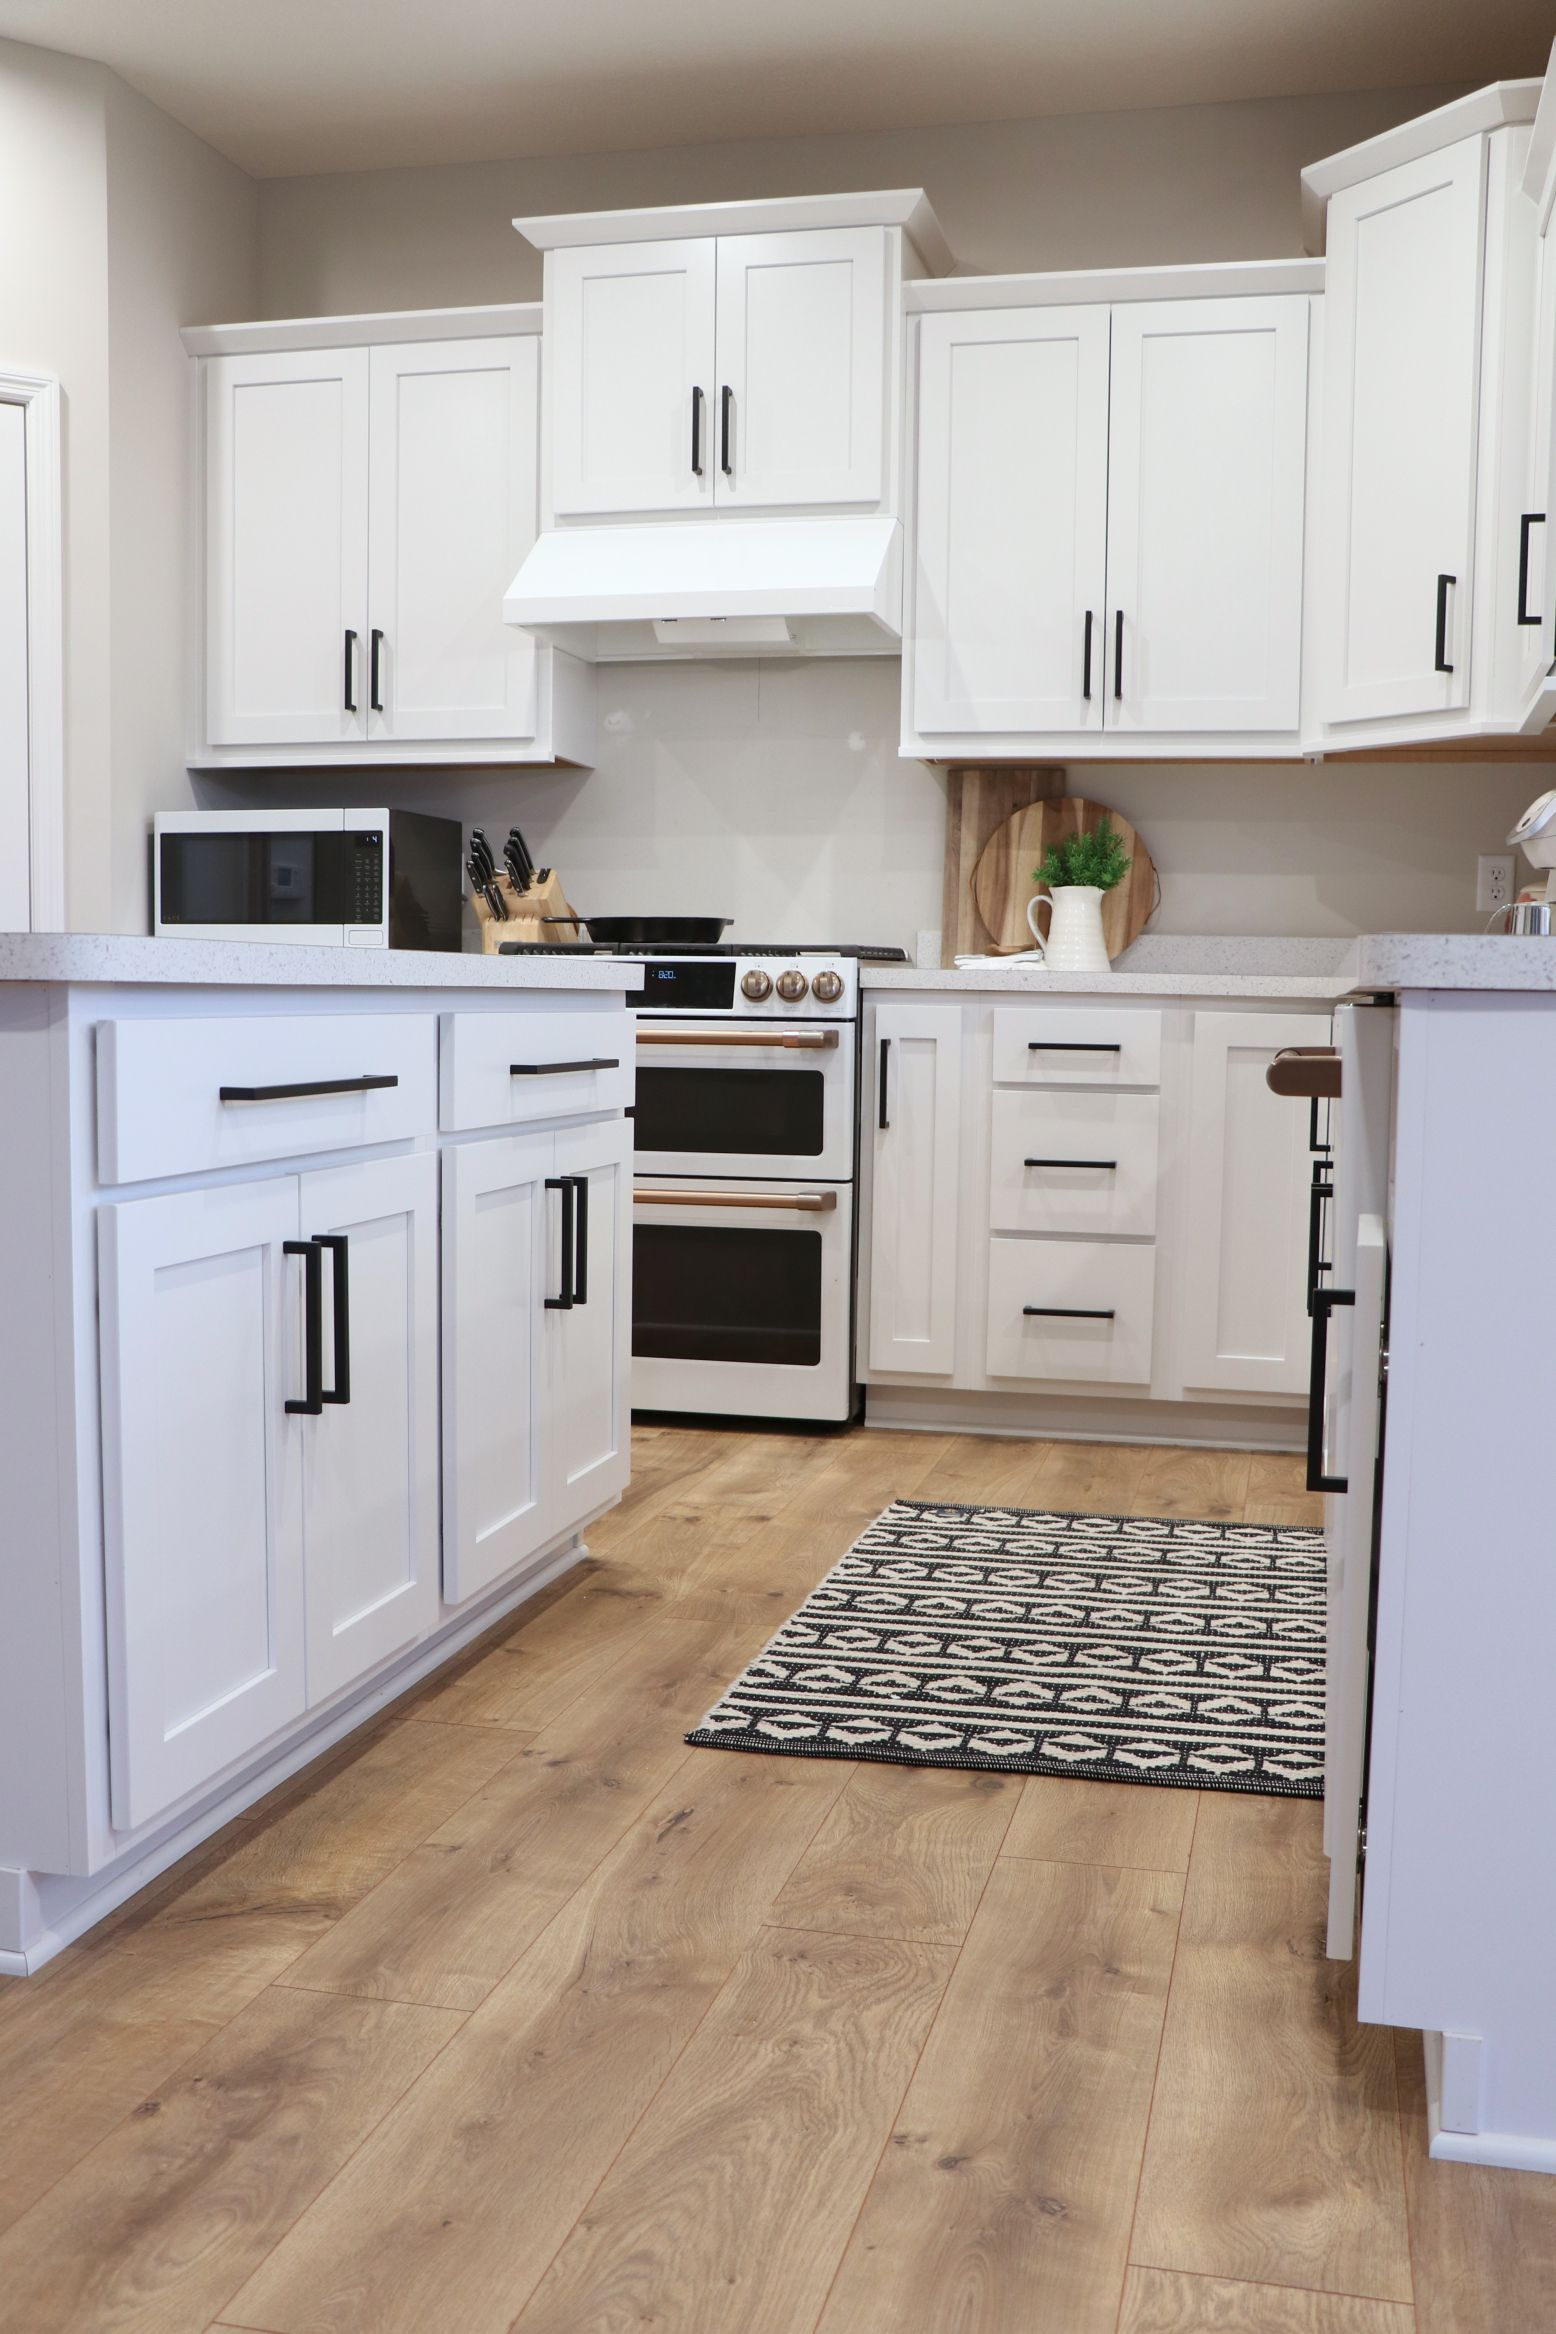 DIY or BUY Hardware Modern farmhouse kitchens